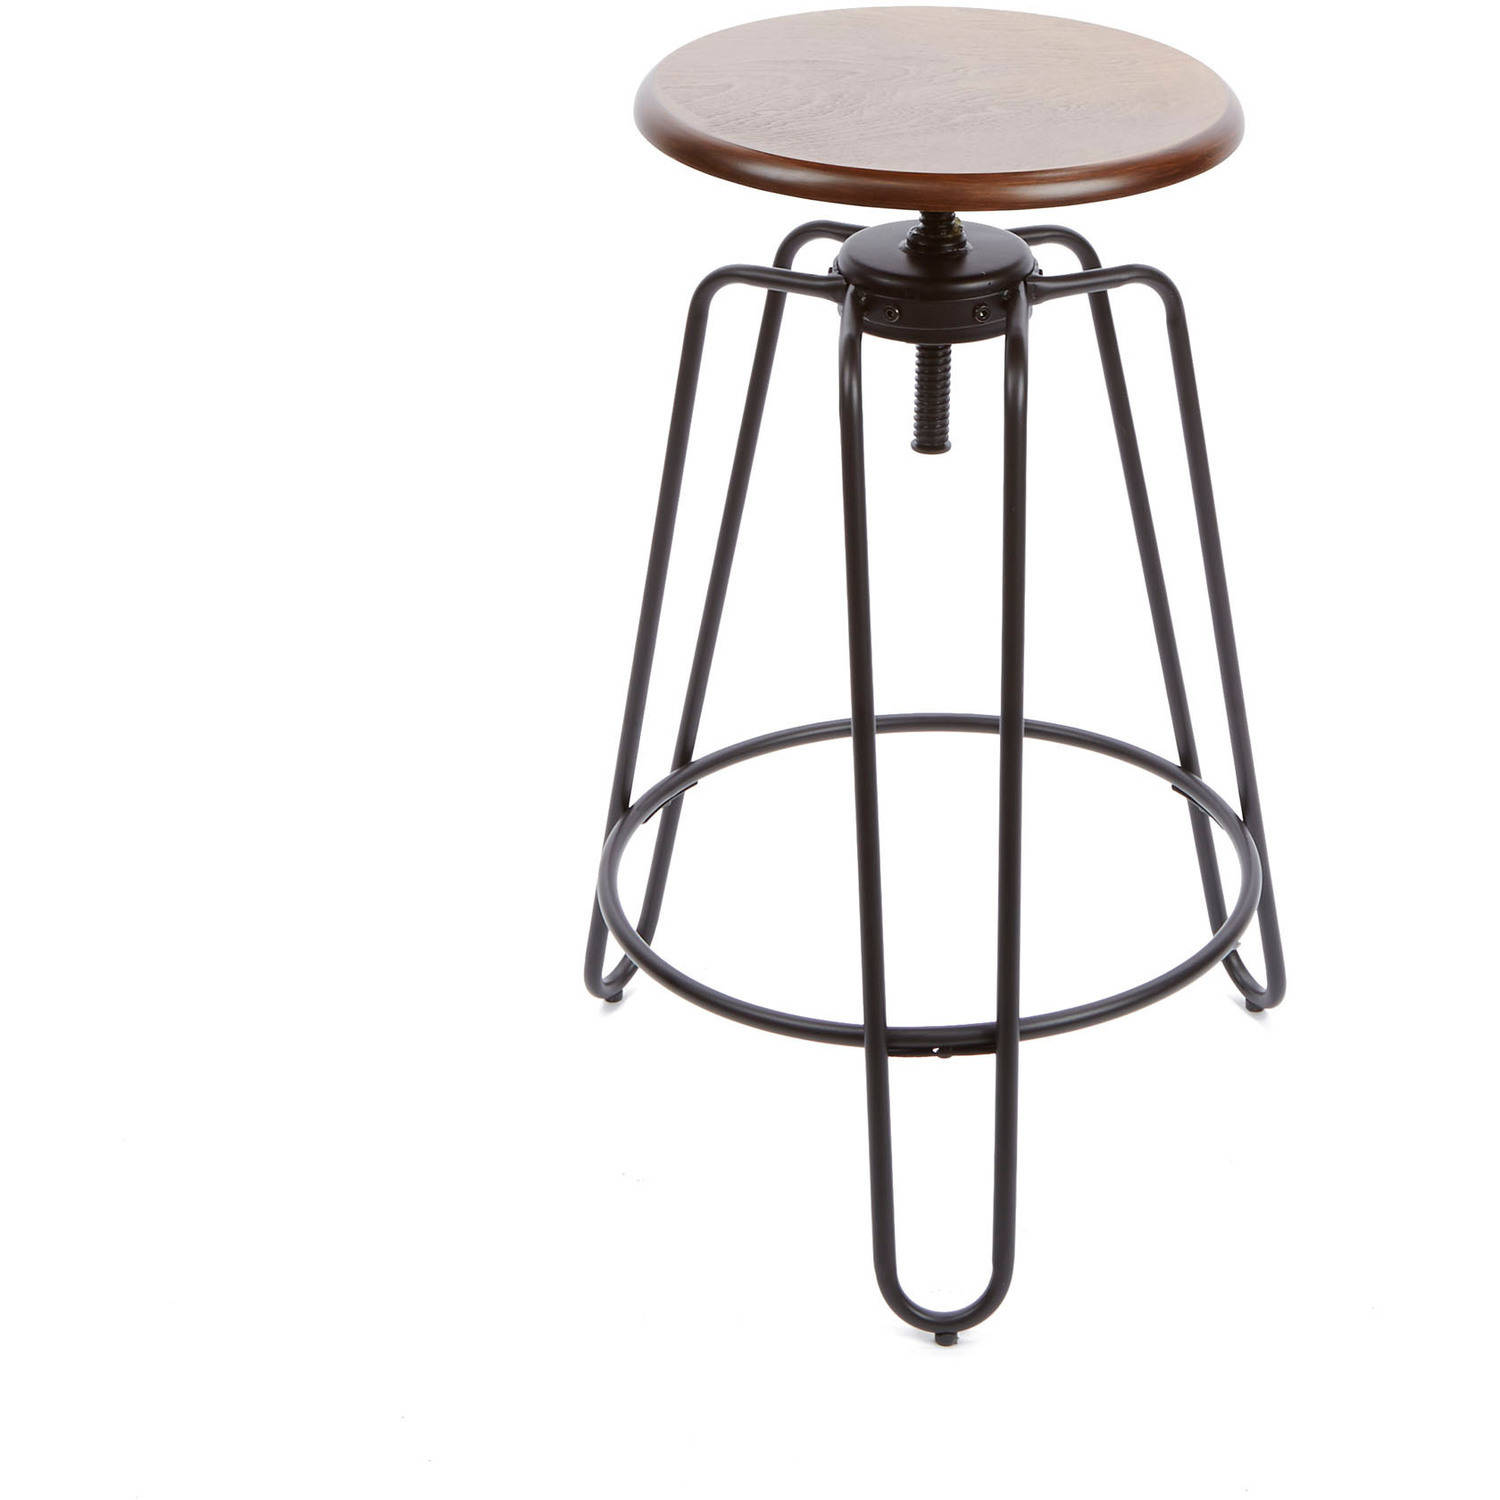 better homes and gardens adjustableheight spin stool multiple  - better homes and gardens adjustableheight spin stool multiple colors walmartcom